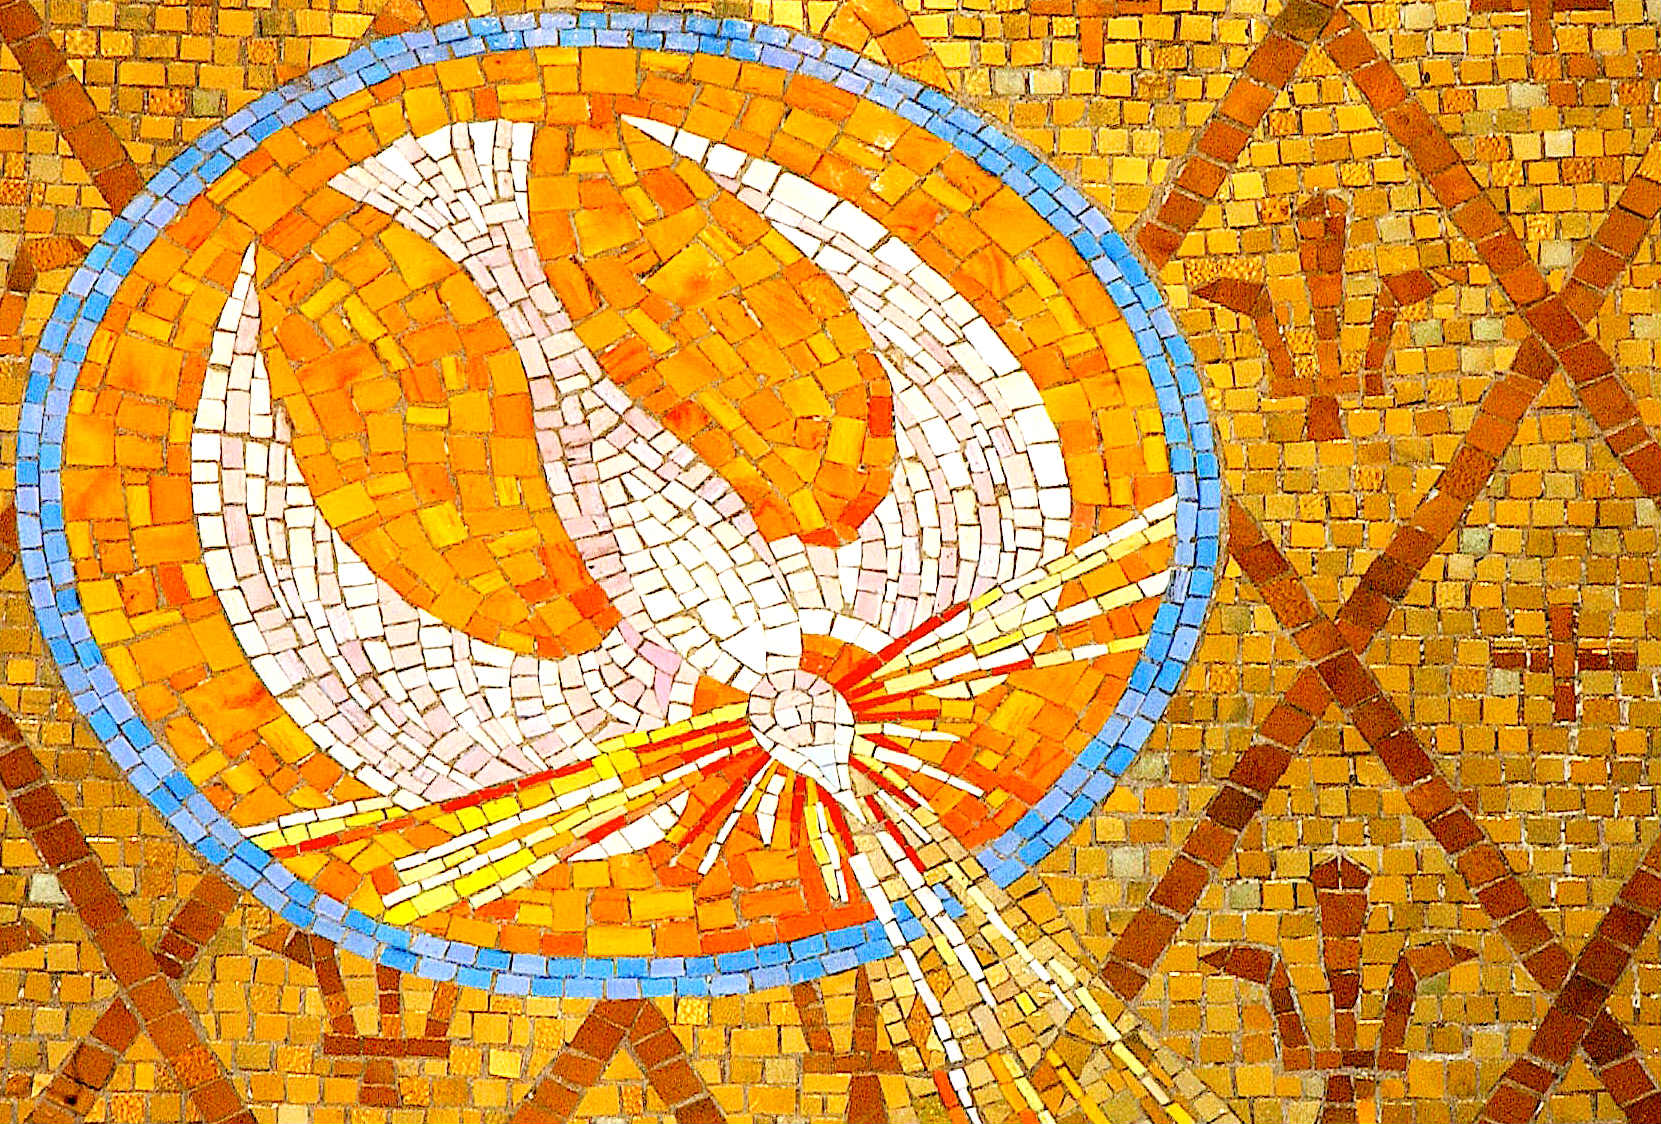 seven 7 gifts and pentecostal charisms of the Holy Spirit pentecost siete dones del espiritu santo pentecostés